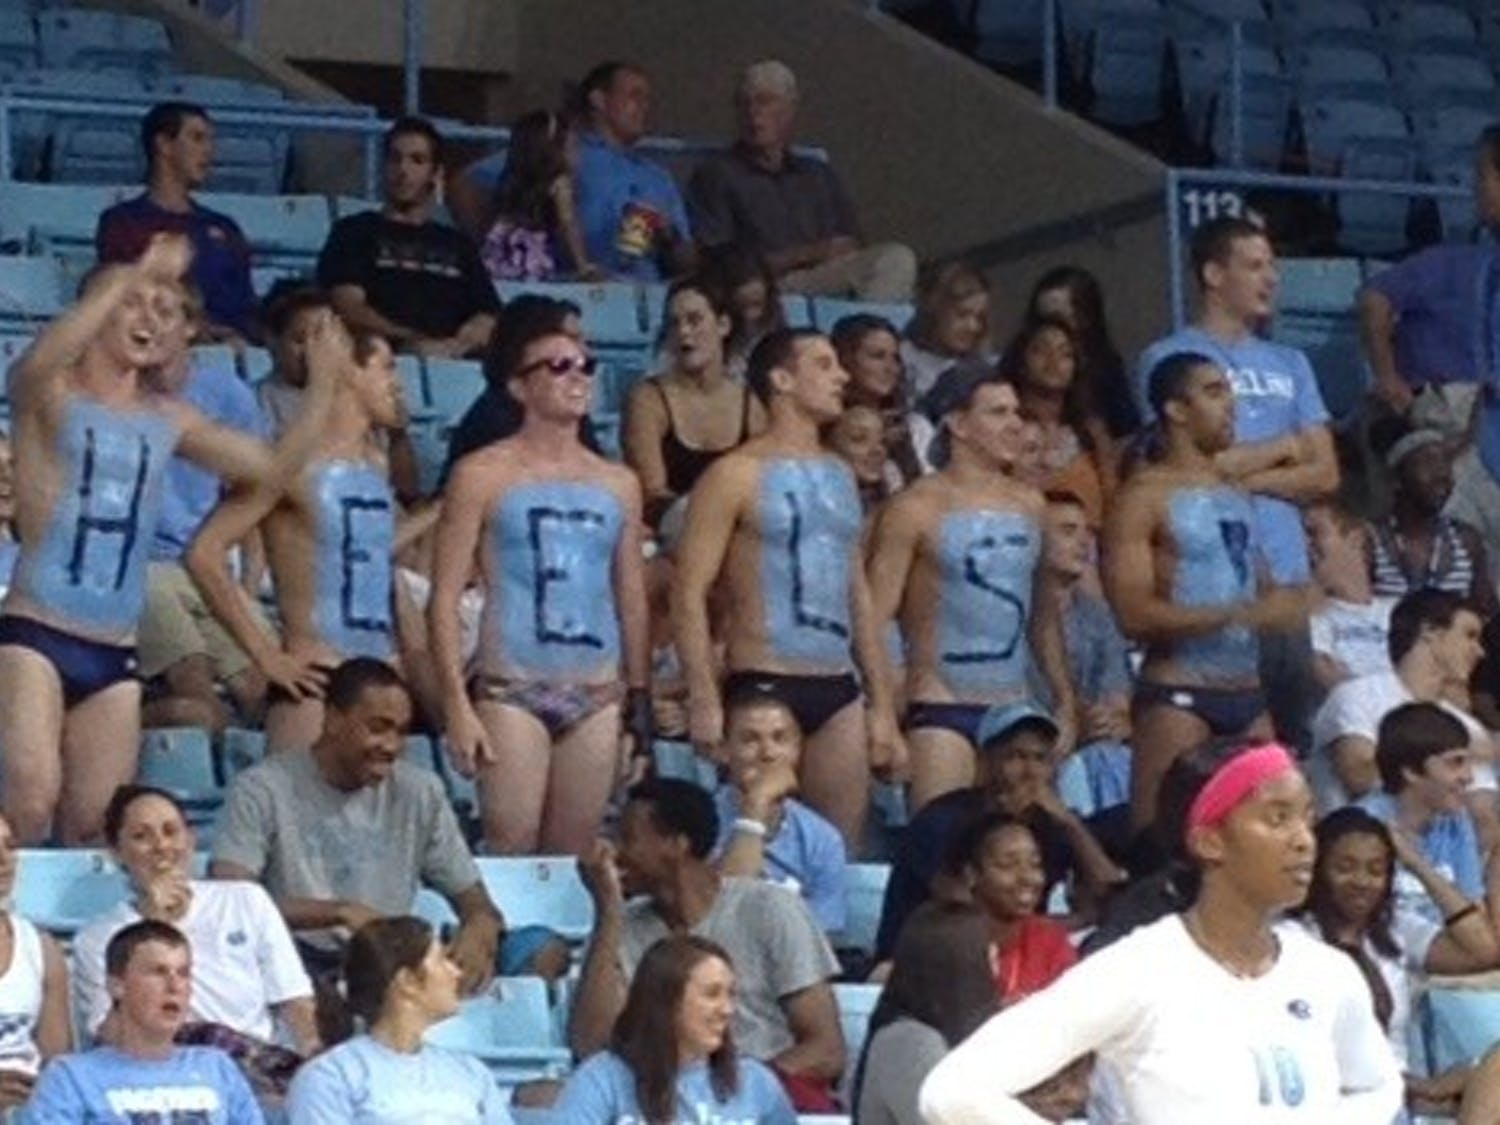 Members of the UNC men's swim team cheer on the volleyball team Friday night at Carmichael Arena.